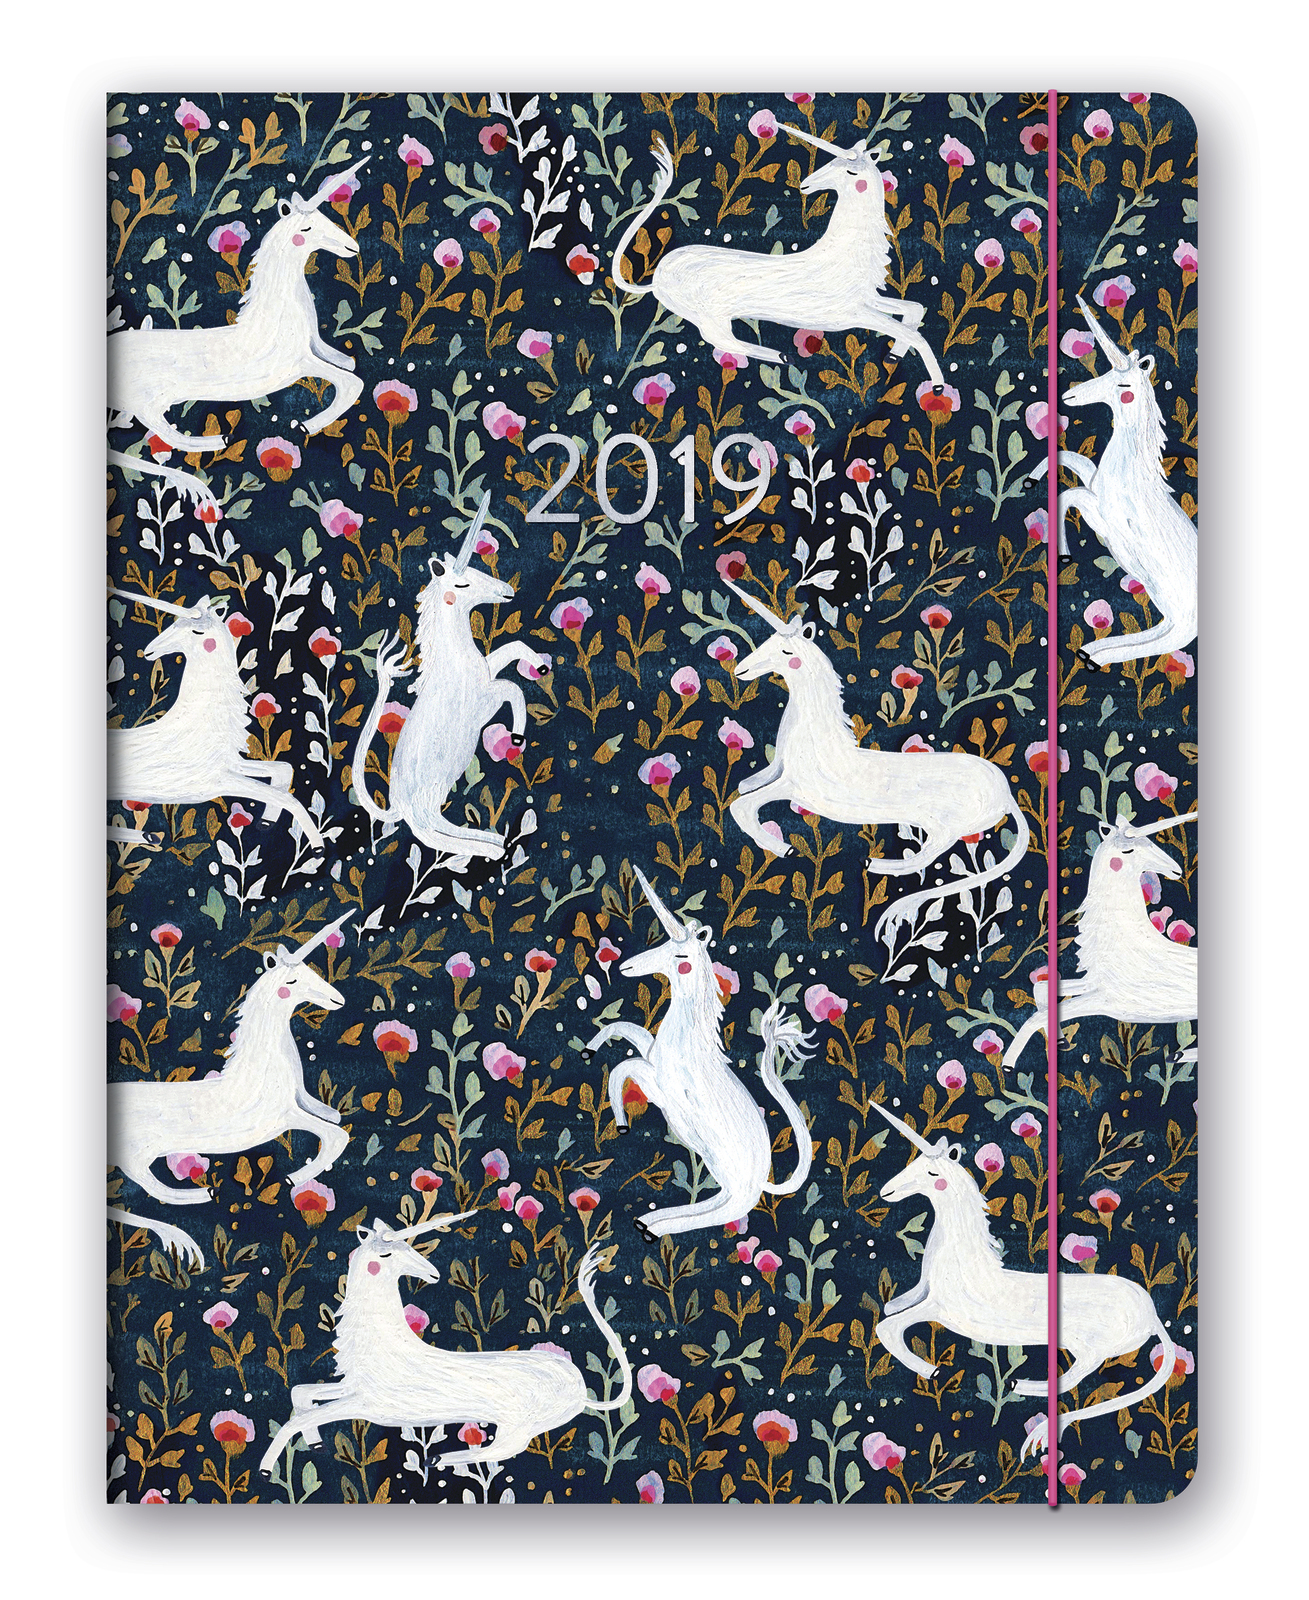 Just Right: Magical 17 Month 2019 Compact Diary image